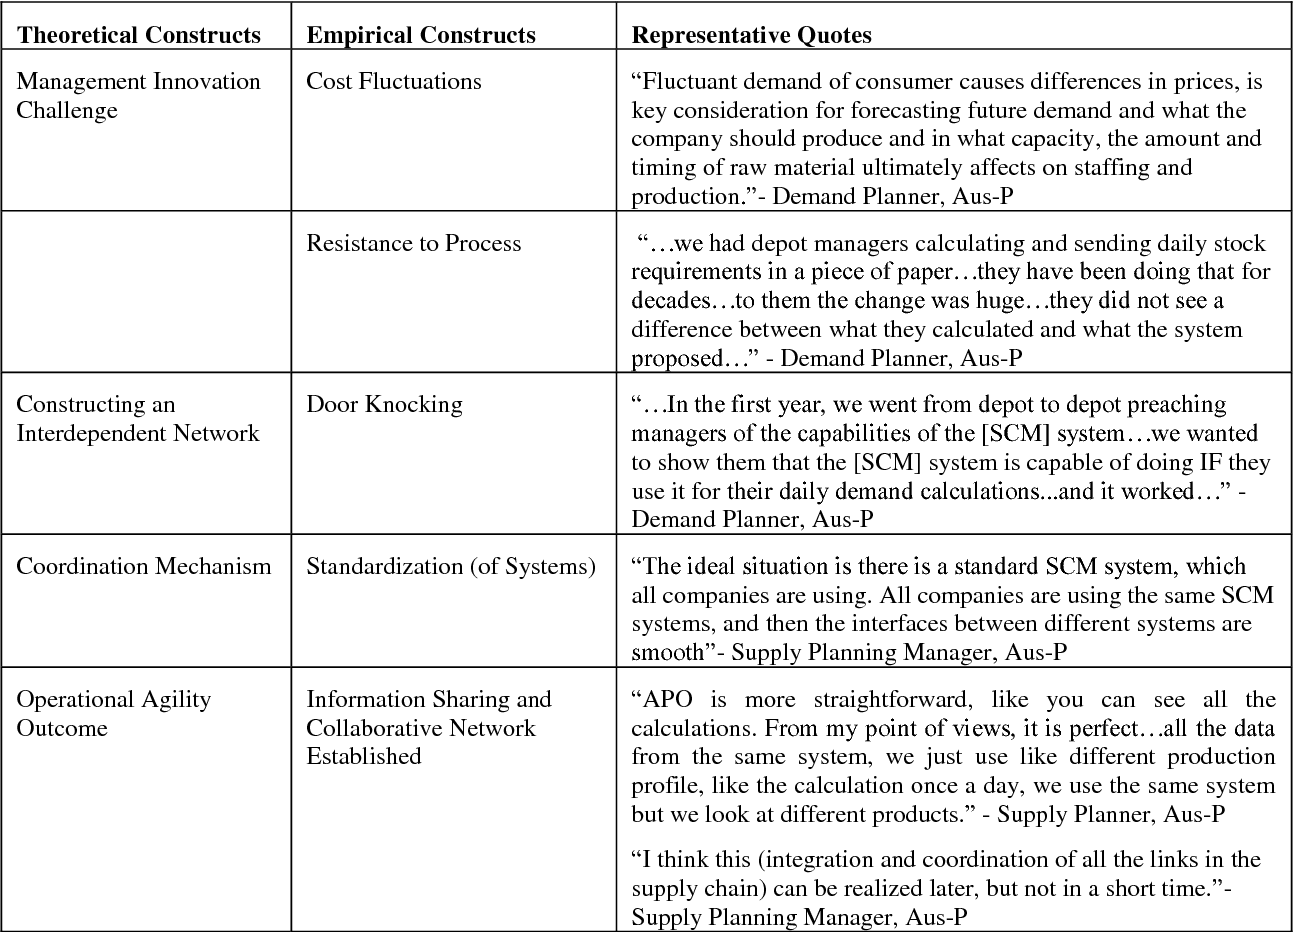 Table 1 from Toward Management Innovation for IT-Enabled Operational